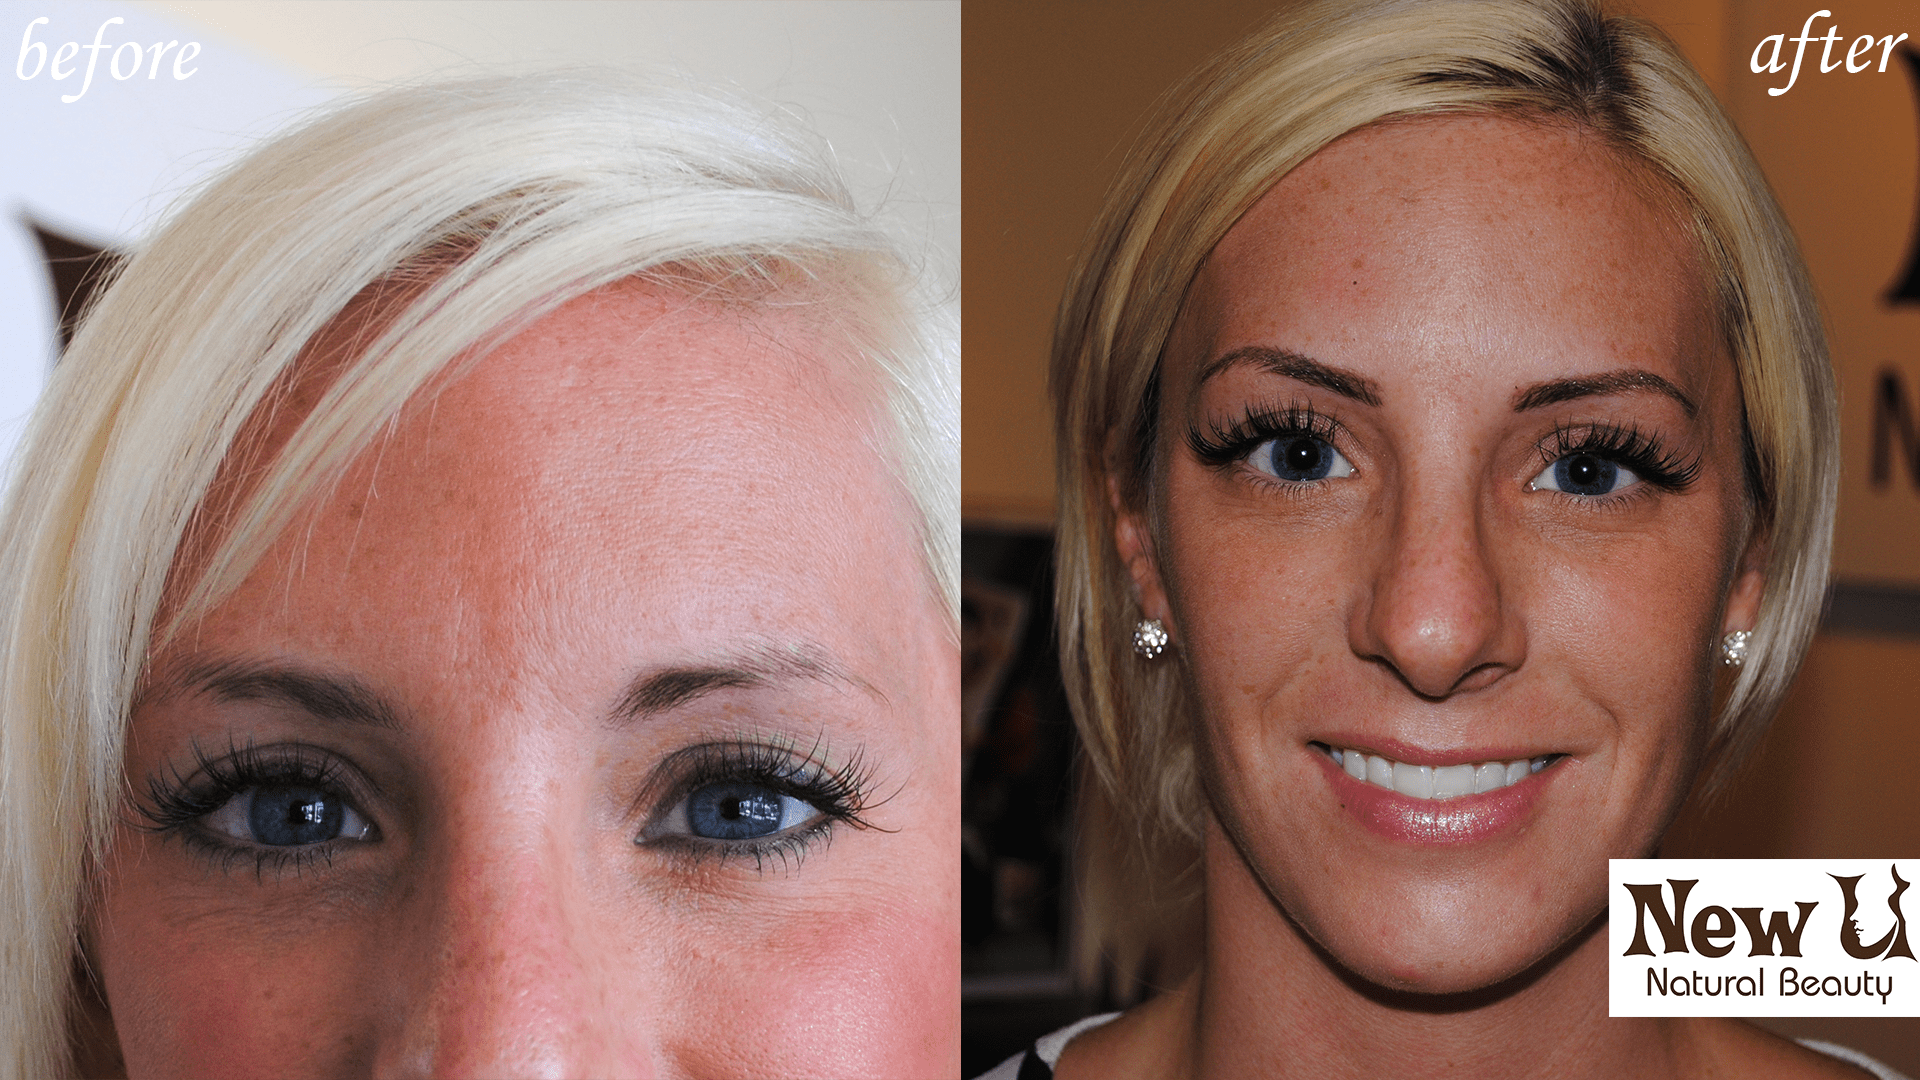 Permanent Makeup 1 Las Vegas Before and After